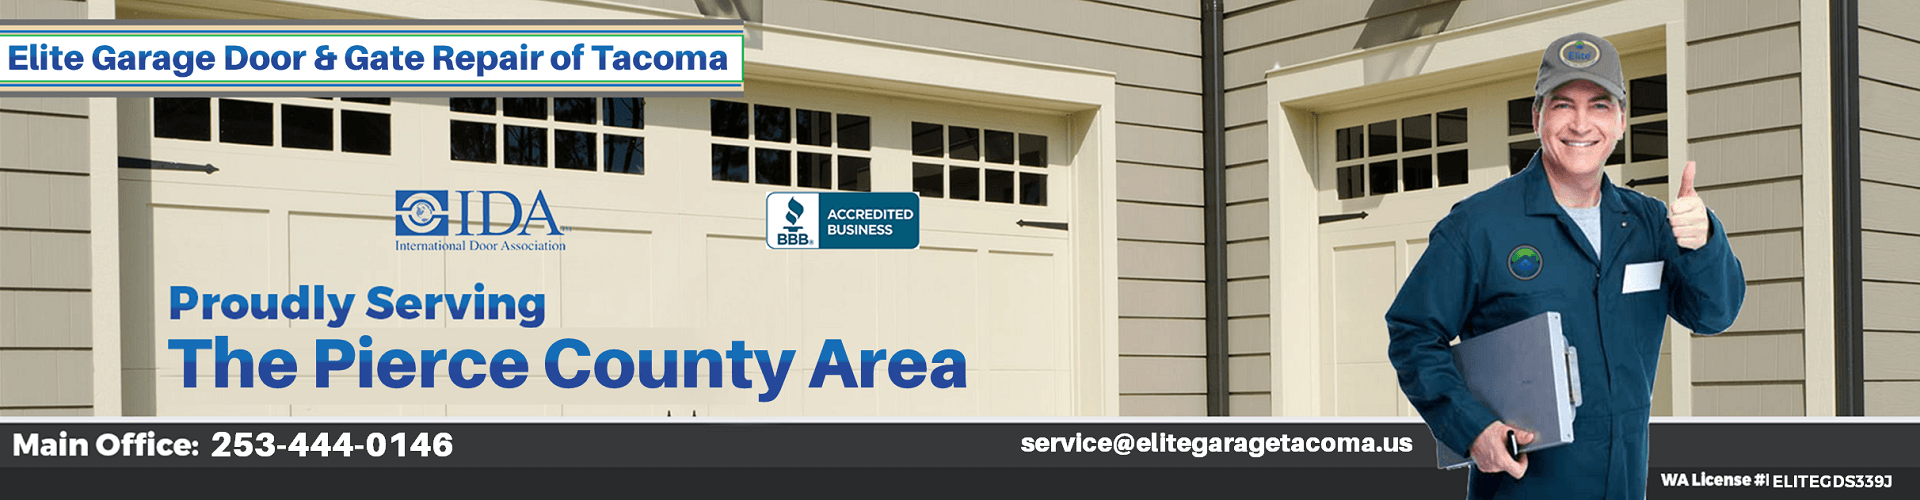 Attrayant Elite® Garage Door U0026 Gate Repair Of Tacoma WA U0026 Pierce County   Main Banner